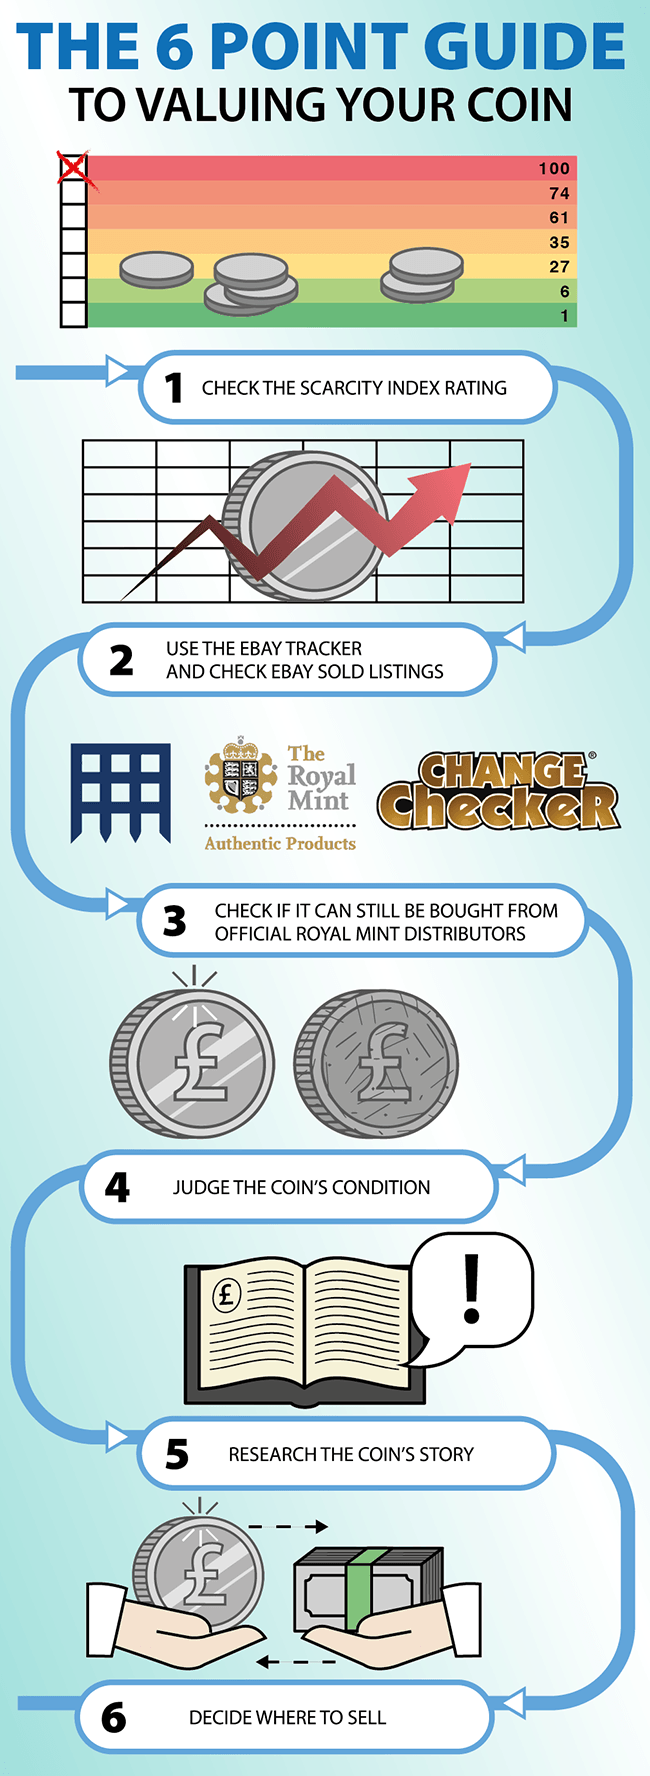 Change Checker 6 Point Guide Blog Infographic 01 1 - Could I be minted? The 6 point guide to valuing your coin!